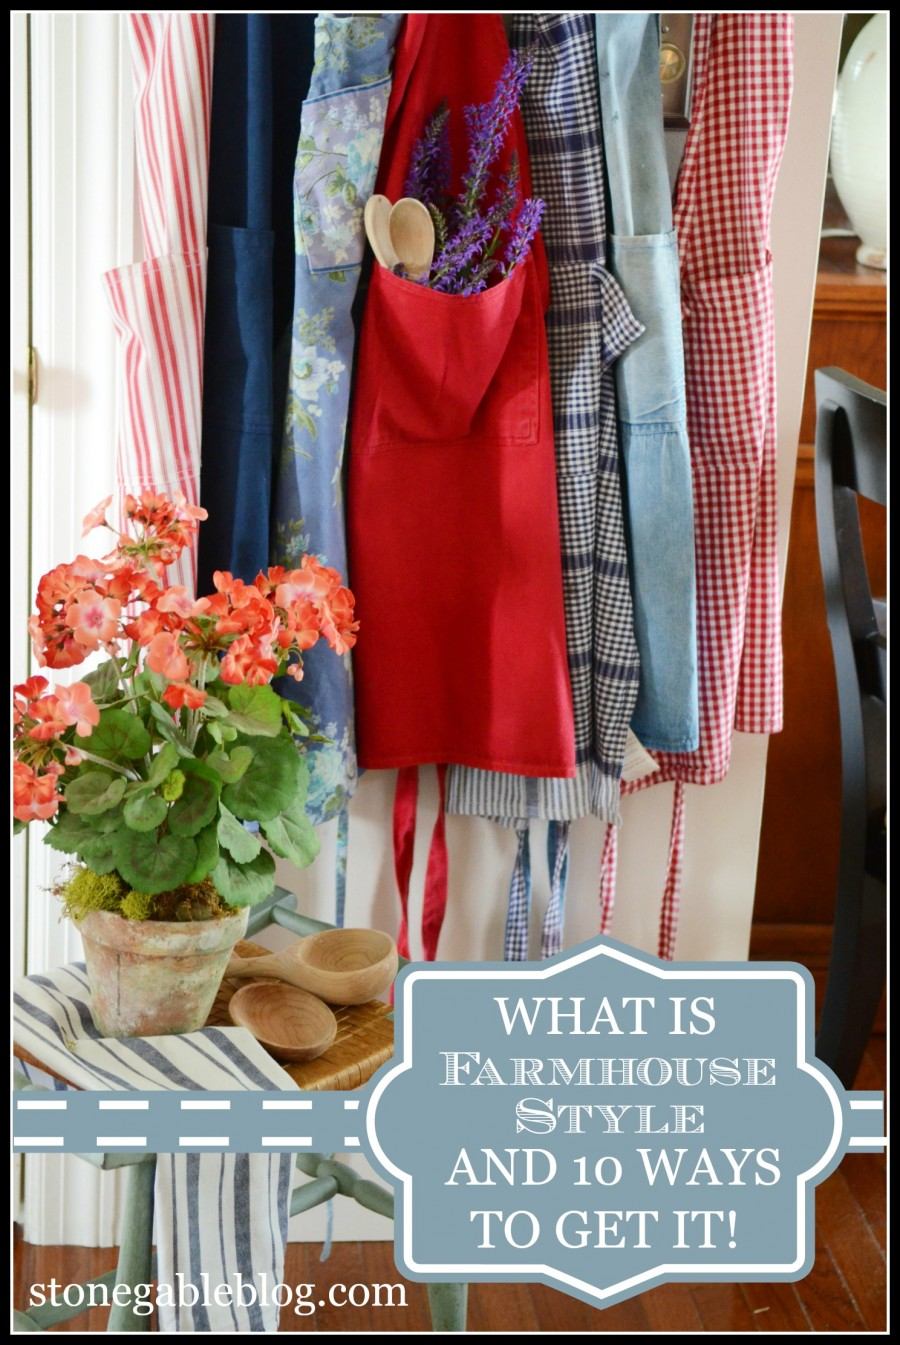 WHAT IS FARMHOUSE STYLE AND HOW TO GET IT! Every home could use just a little farmhouse charm!